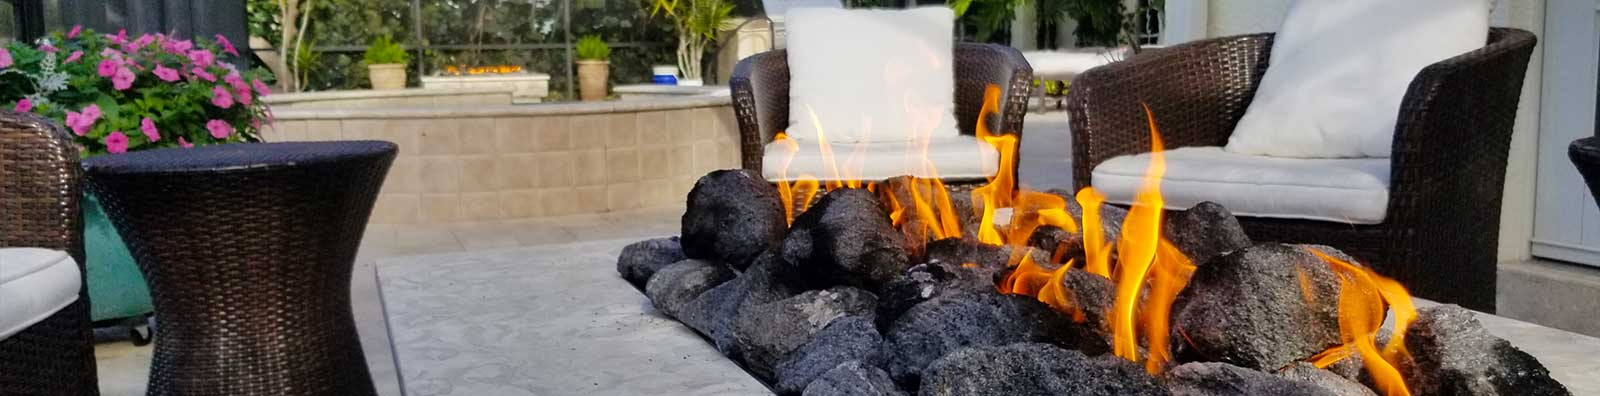 Outdoor Living Blog - Firepit | Jacobs Total Gas Services - Expert Propane & Natural Gas Installation Services in Naples, Marco Island, Bonita Springs & Estero